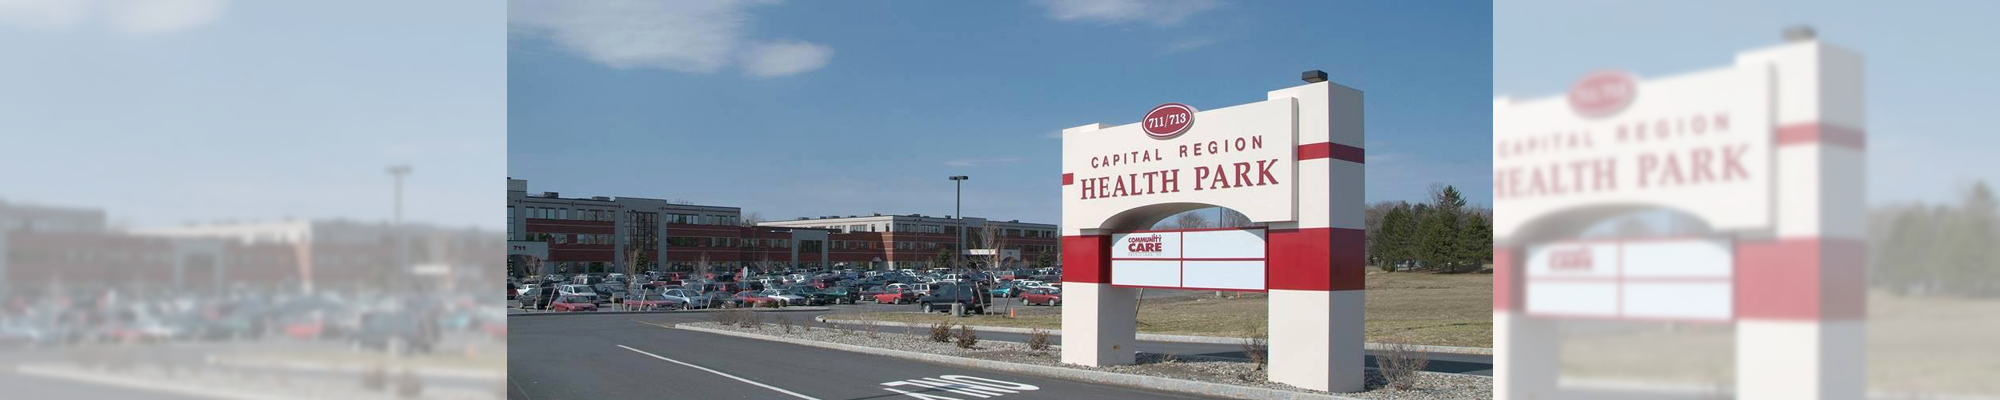 Capital Region Health Park, 711 Troy-Schenectady Road, Community Care Physicians P.C.